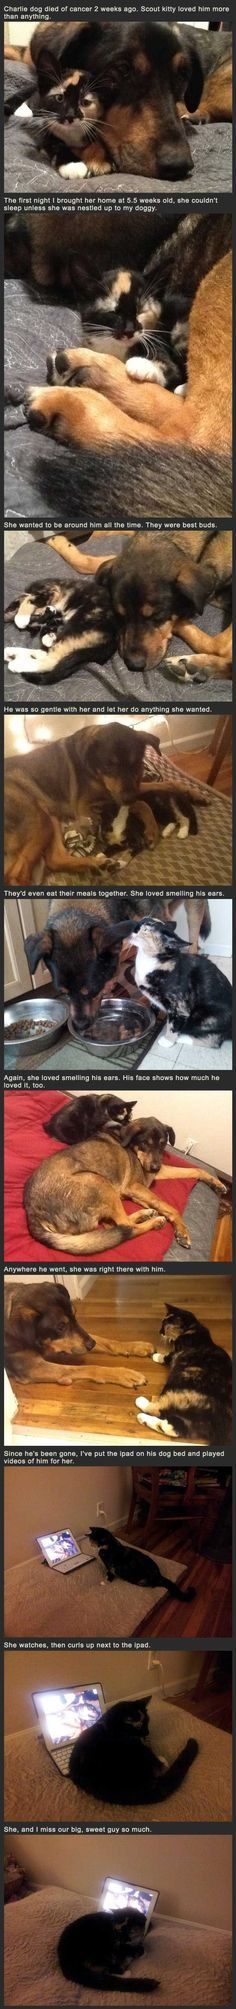 Heartbreaking Cat's Reaction To Losing Her Dog Best Friend cute animals dogs cat cats sad adorable dog story puppy animal pets kitten stories heart warming This made me cry. Animals And Pets, Baby Animals, Funny Animals, Cute Animals, Dog Died, Dog Best Friend, Mundo Animal, Crazy Cats, Animals Beautiful